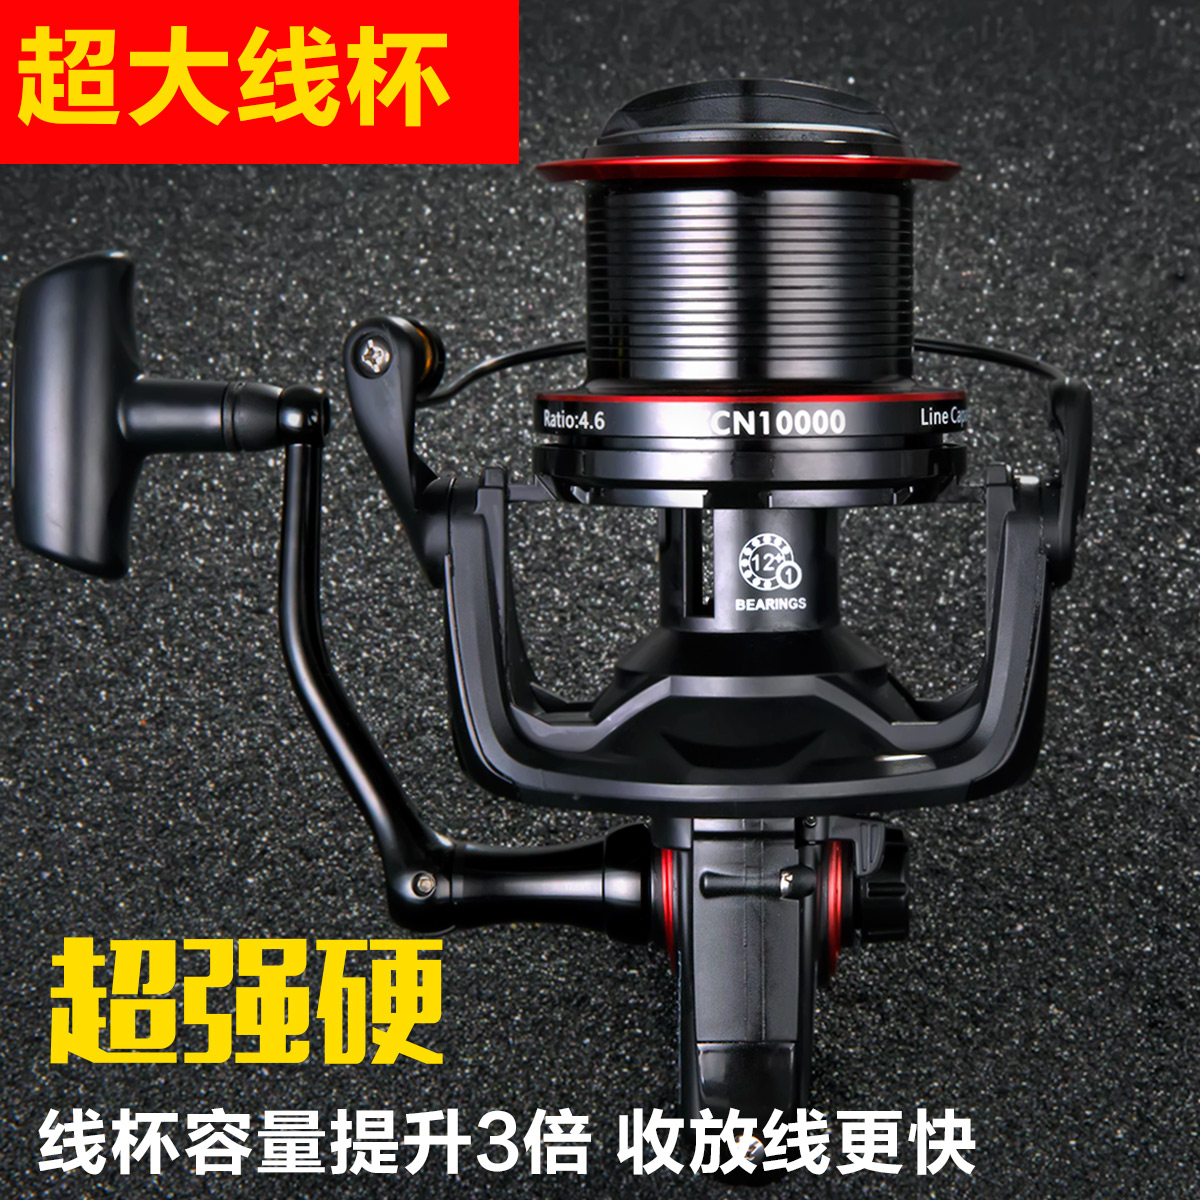 Diva 13 axis 8000 full metal wire cup seawater fishing reel big far throw round sea bream fish reel fishing reel fish wheel